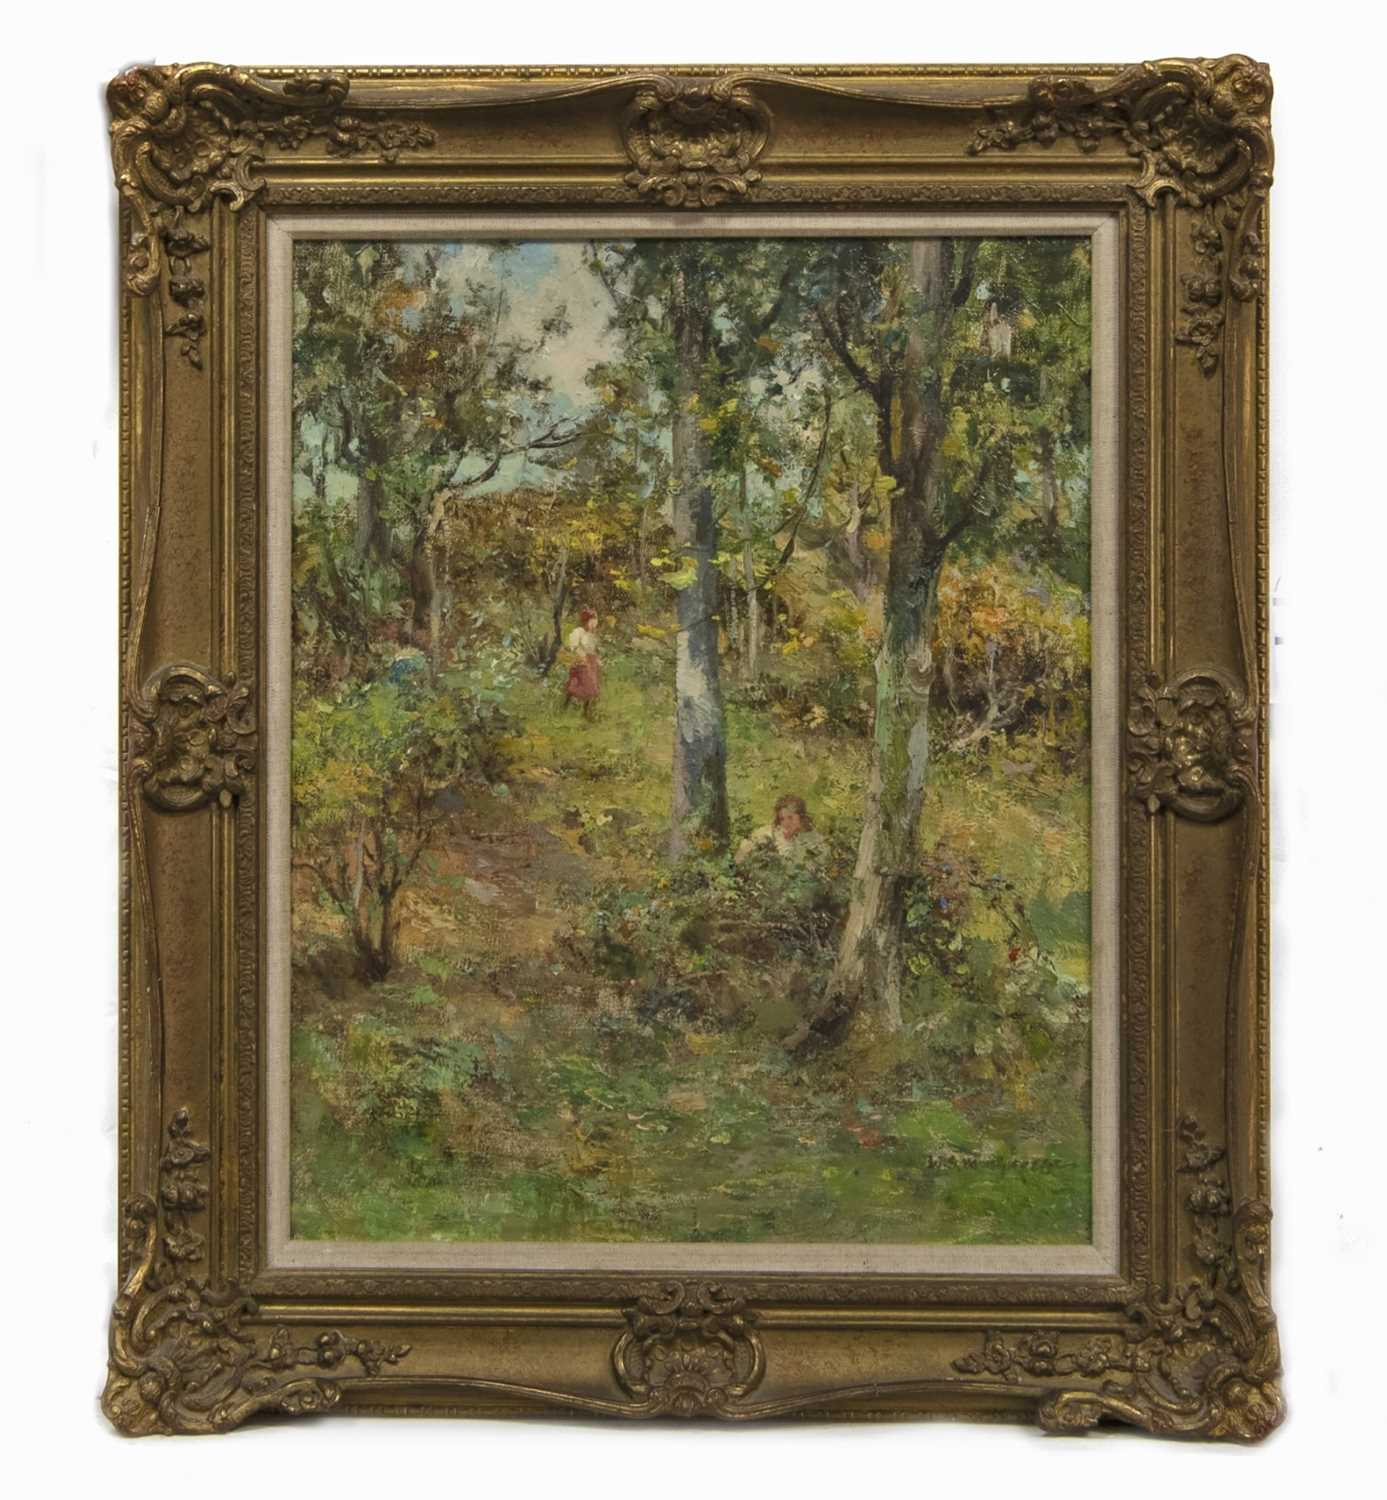 Lot 2022 - GATHERING BRAMBLES, AN OIL BY WILLIAM STEWART MACGEORGE